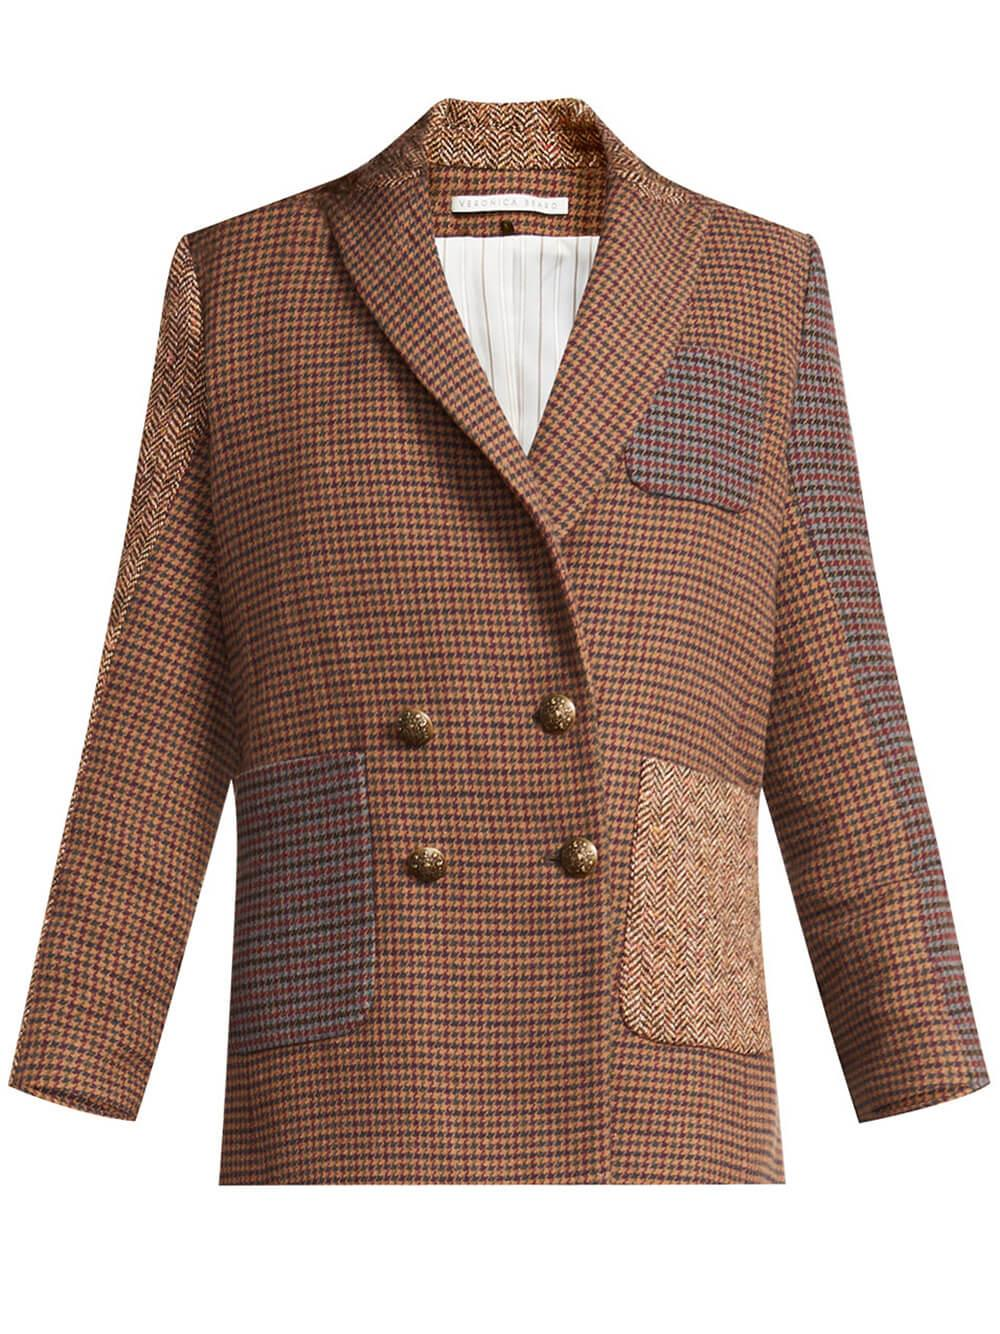 Faustine Houndstooth Dickey Jacket Item # 2108HT1210030